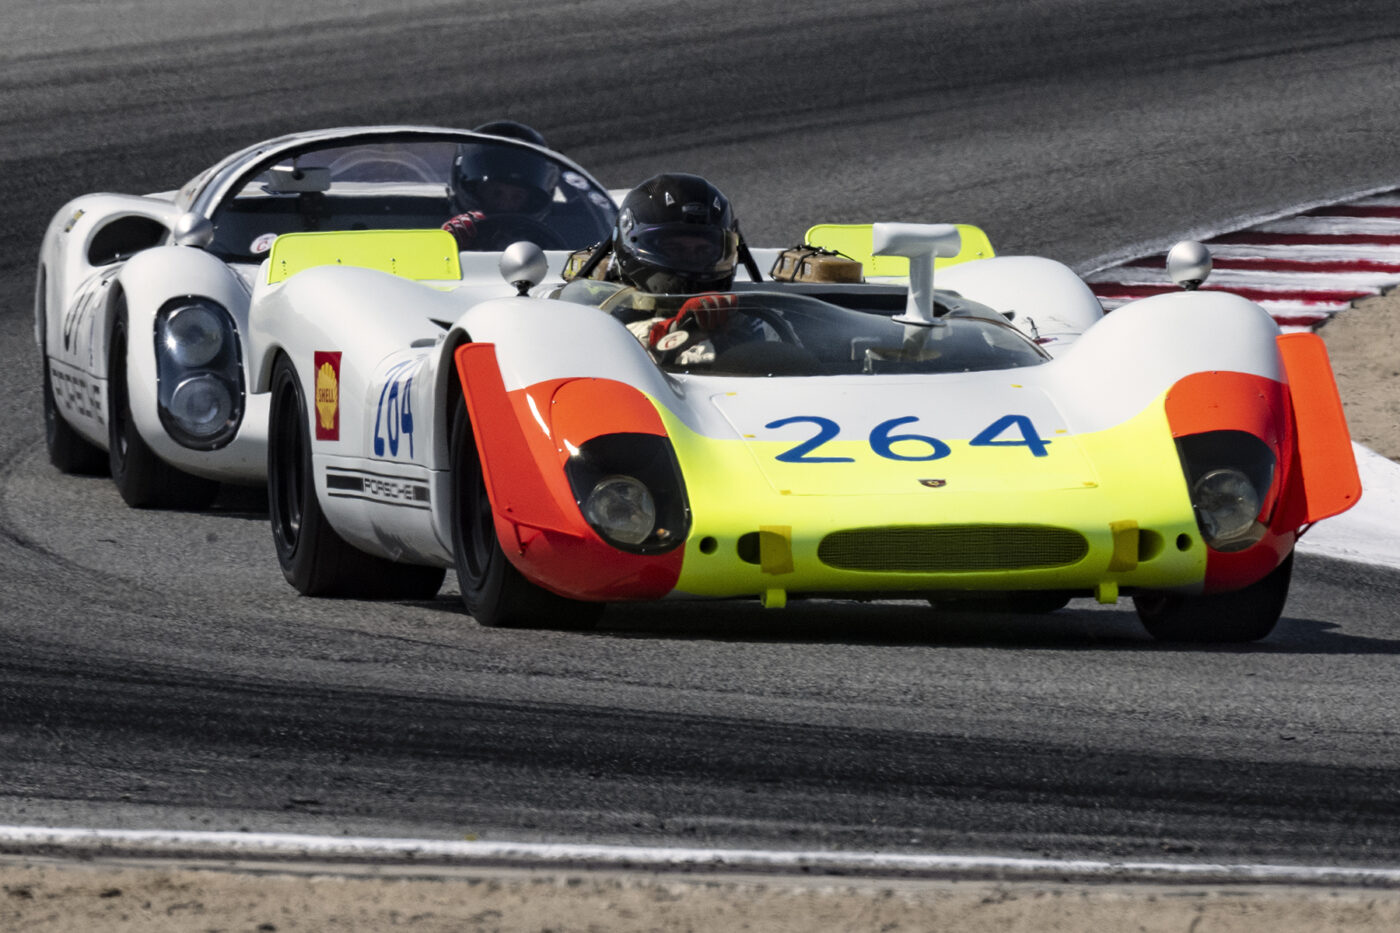 Richard Griot's 1969 Porsche 908 2997 accelerates out of turn five. ©2021 Dennis Gray